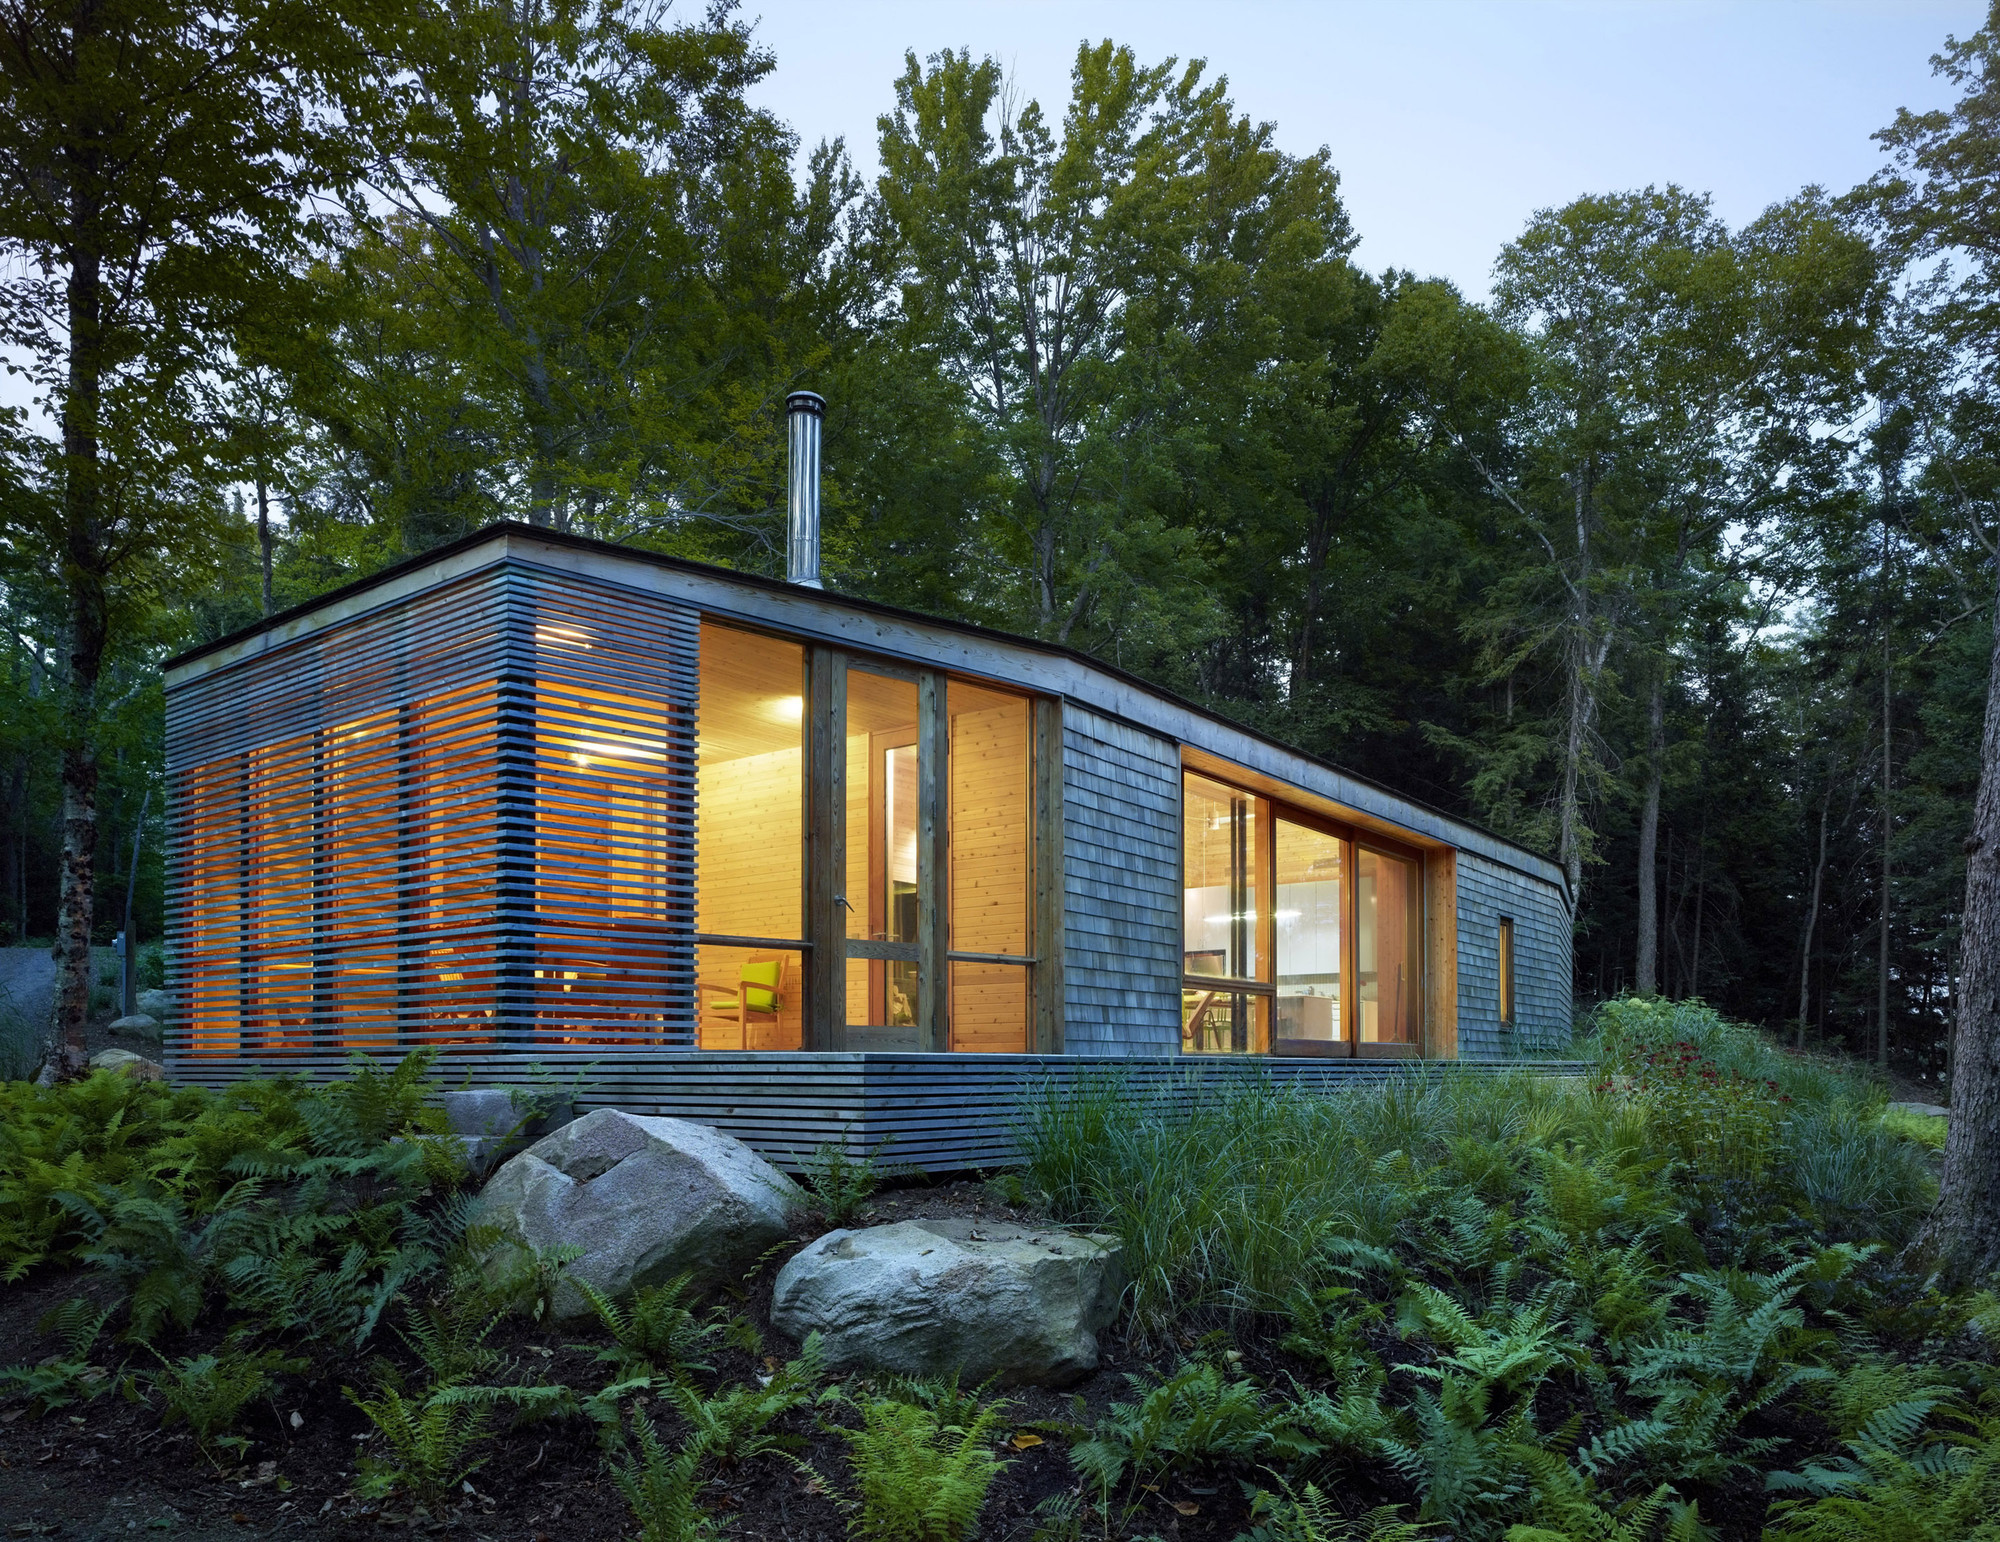 modern and small home improvement architecture designs ideas 0903 stealth cabin